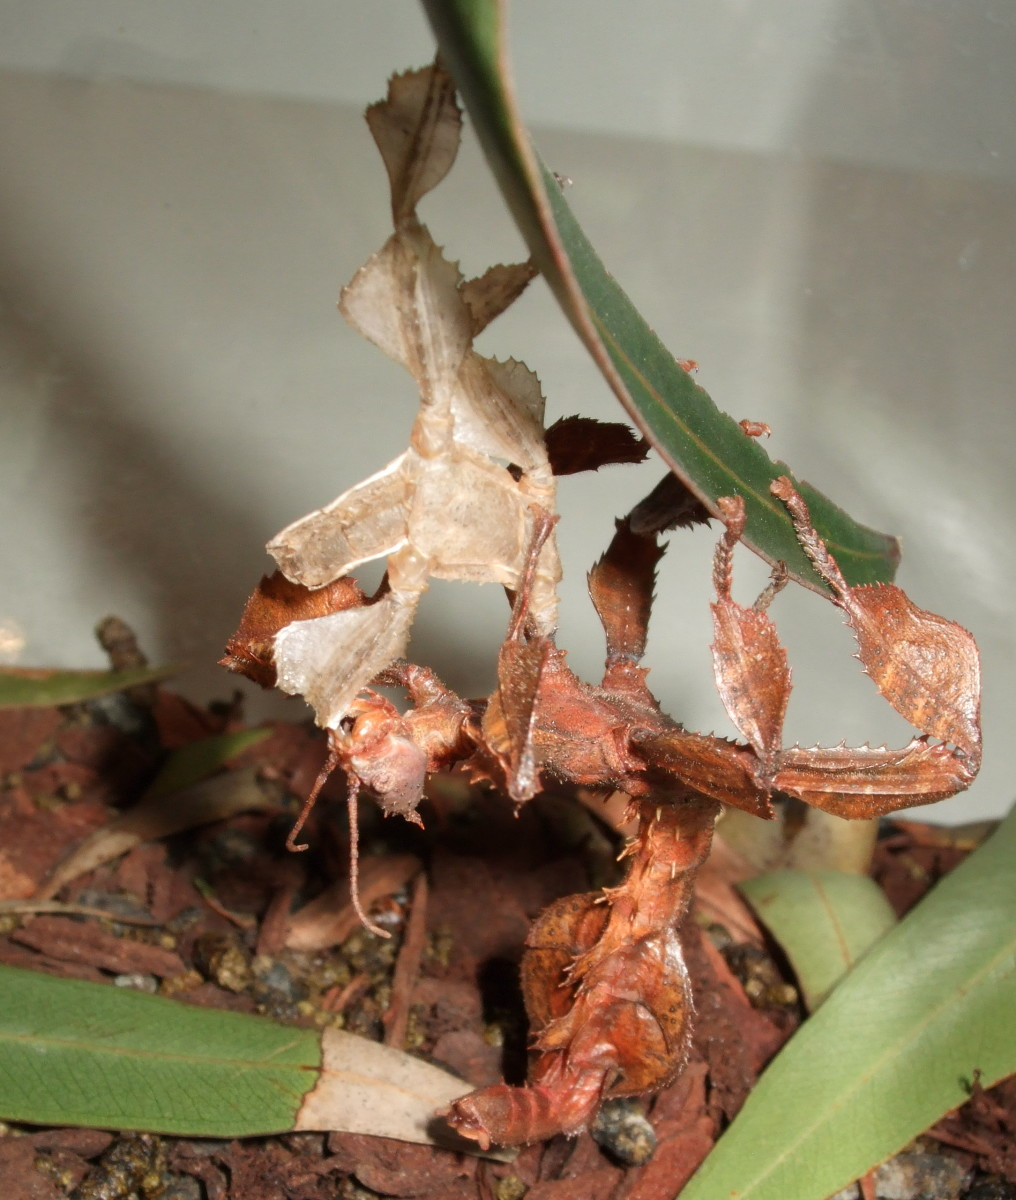 After shedding their skin, the Spiny Leaf Insect devours it!